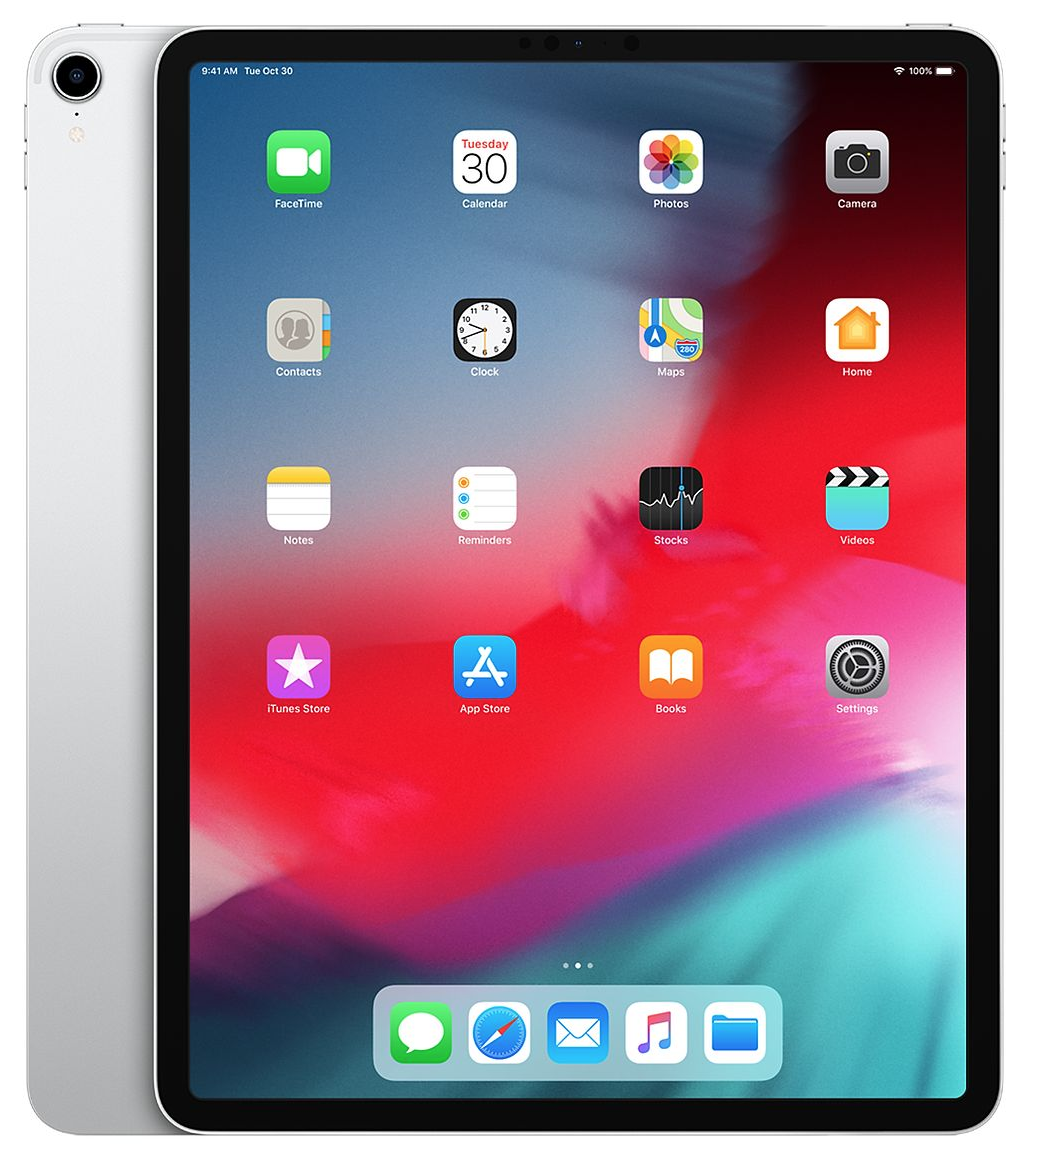 Wi-Fi+Cellular iPad Pro3 12.9 512GB